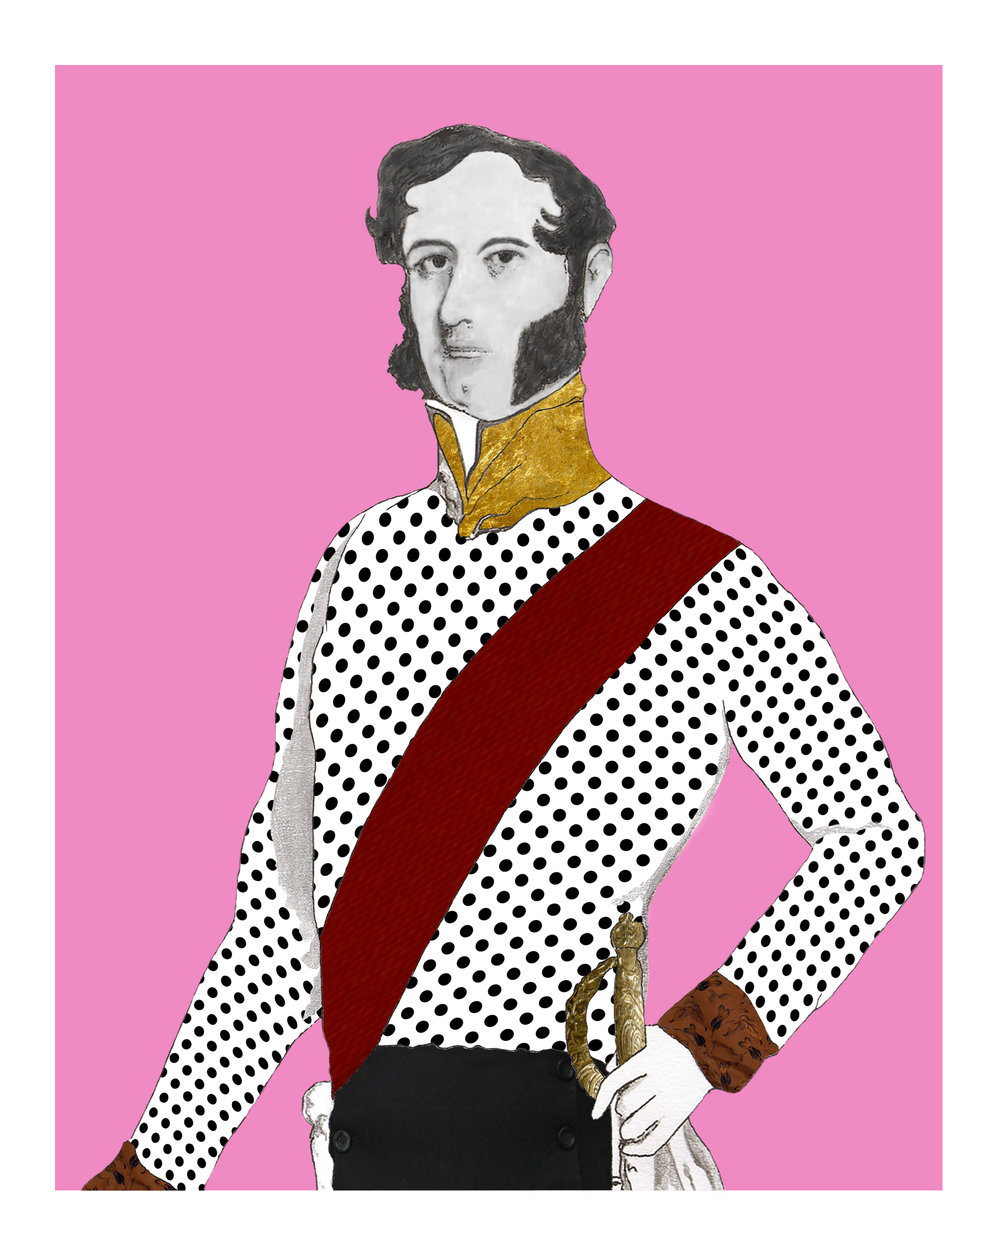 The Duke on Pink Giclée print 10 in x 8 in Edition of 25